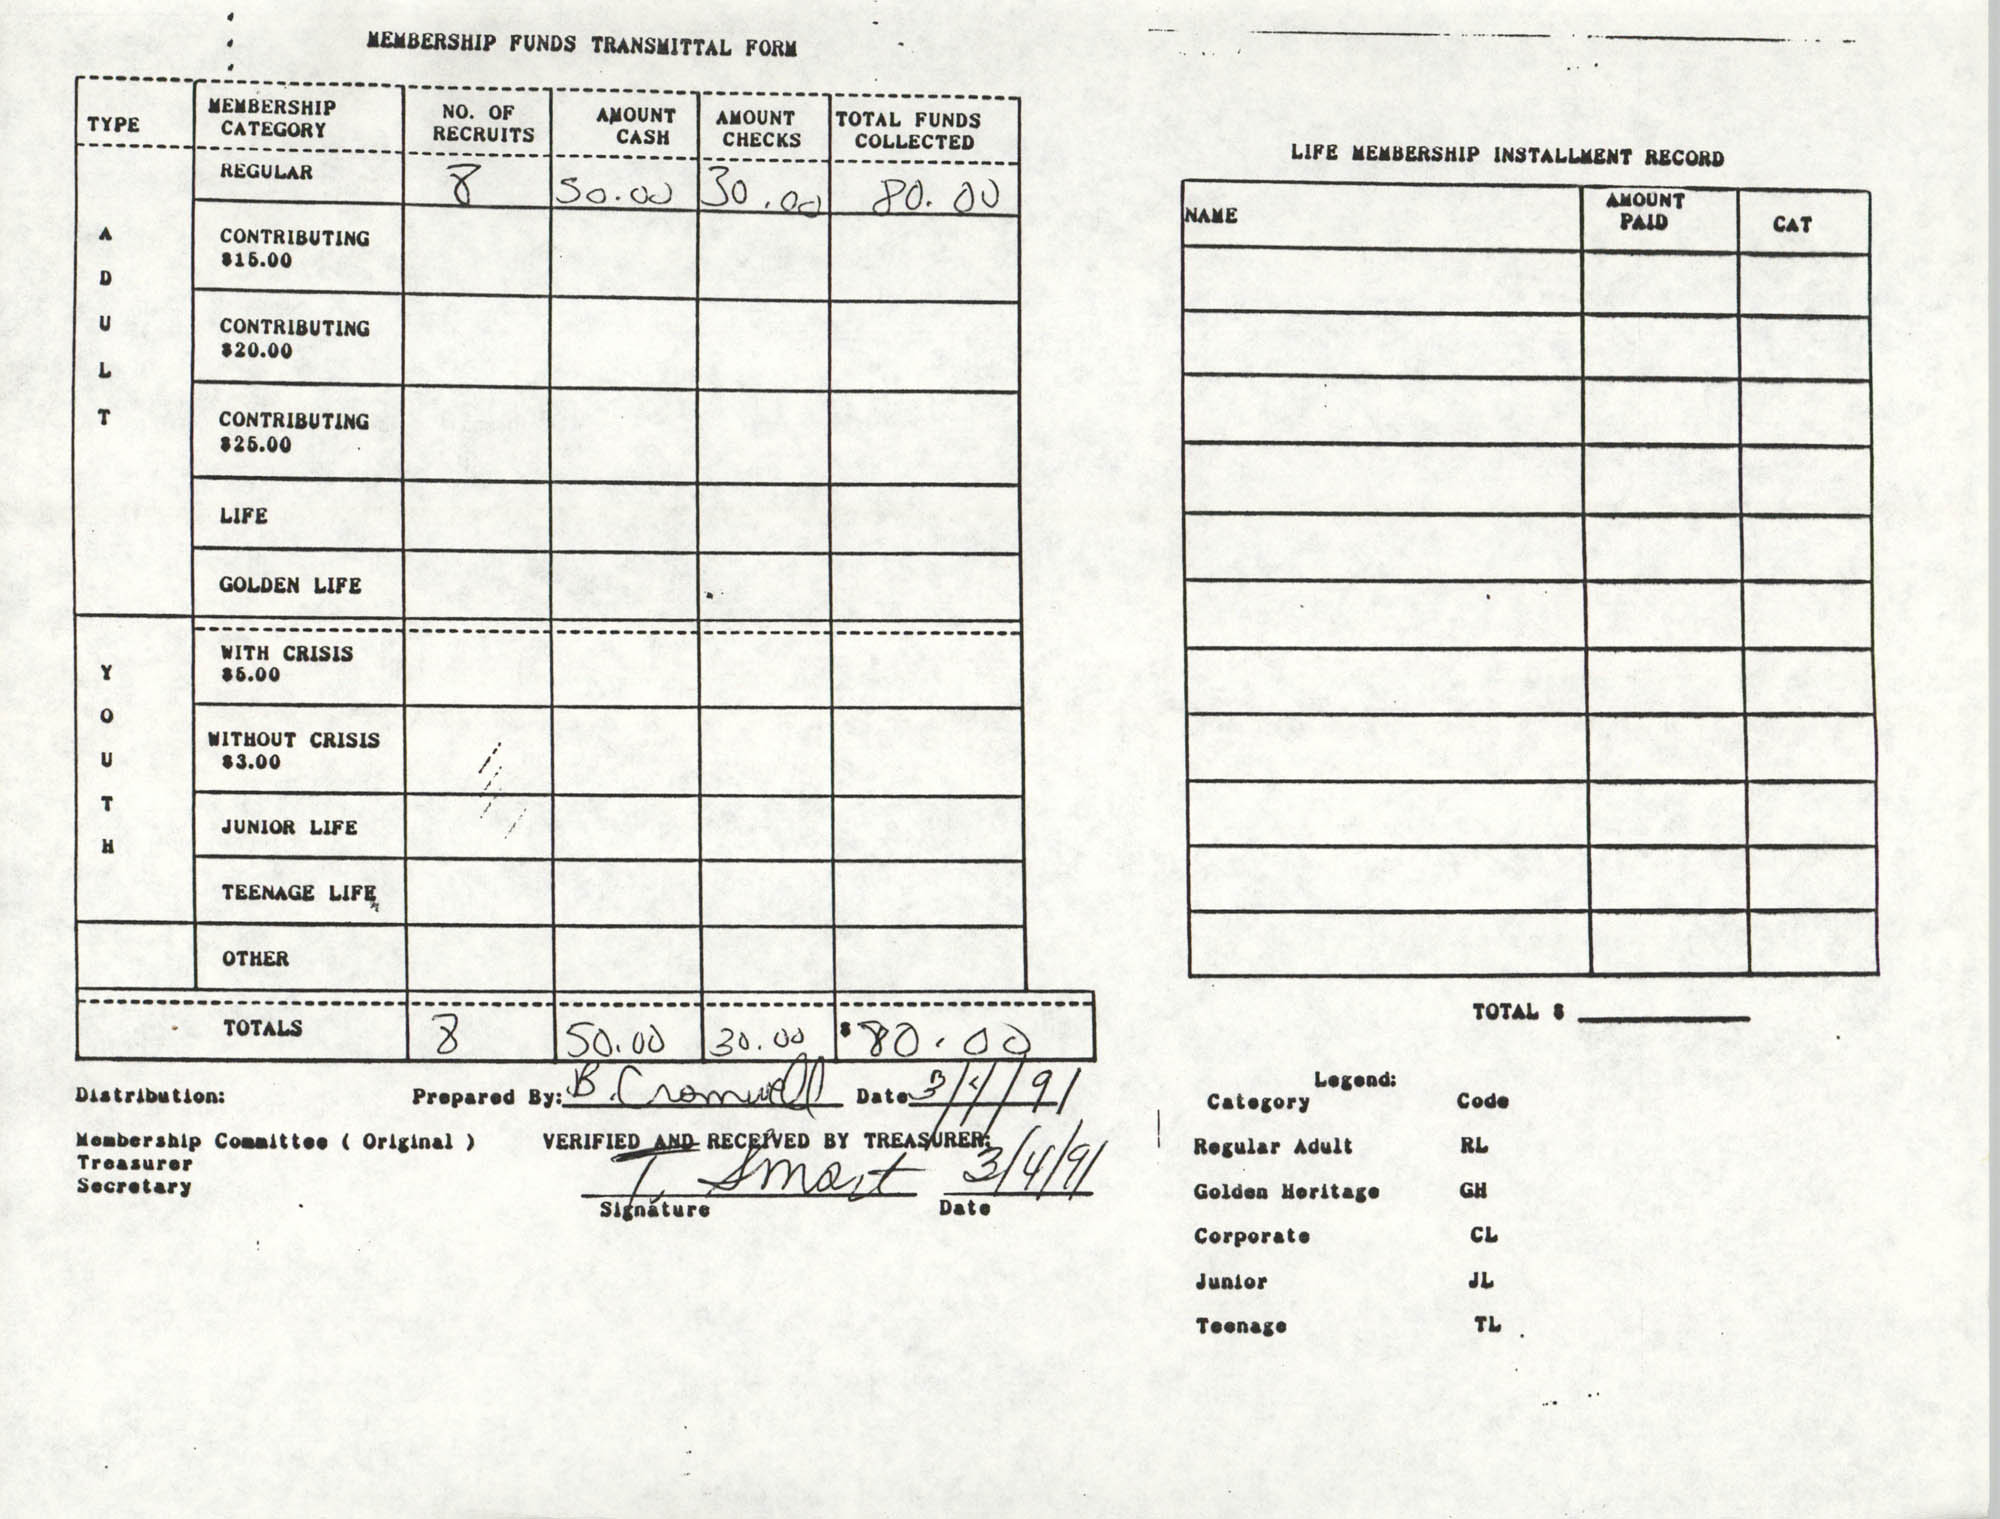 Charleston Branch of the NAACP Funds Transmittal Forms, March 1991, Page 2